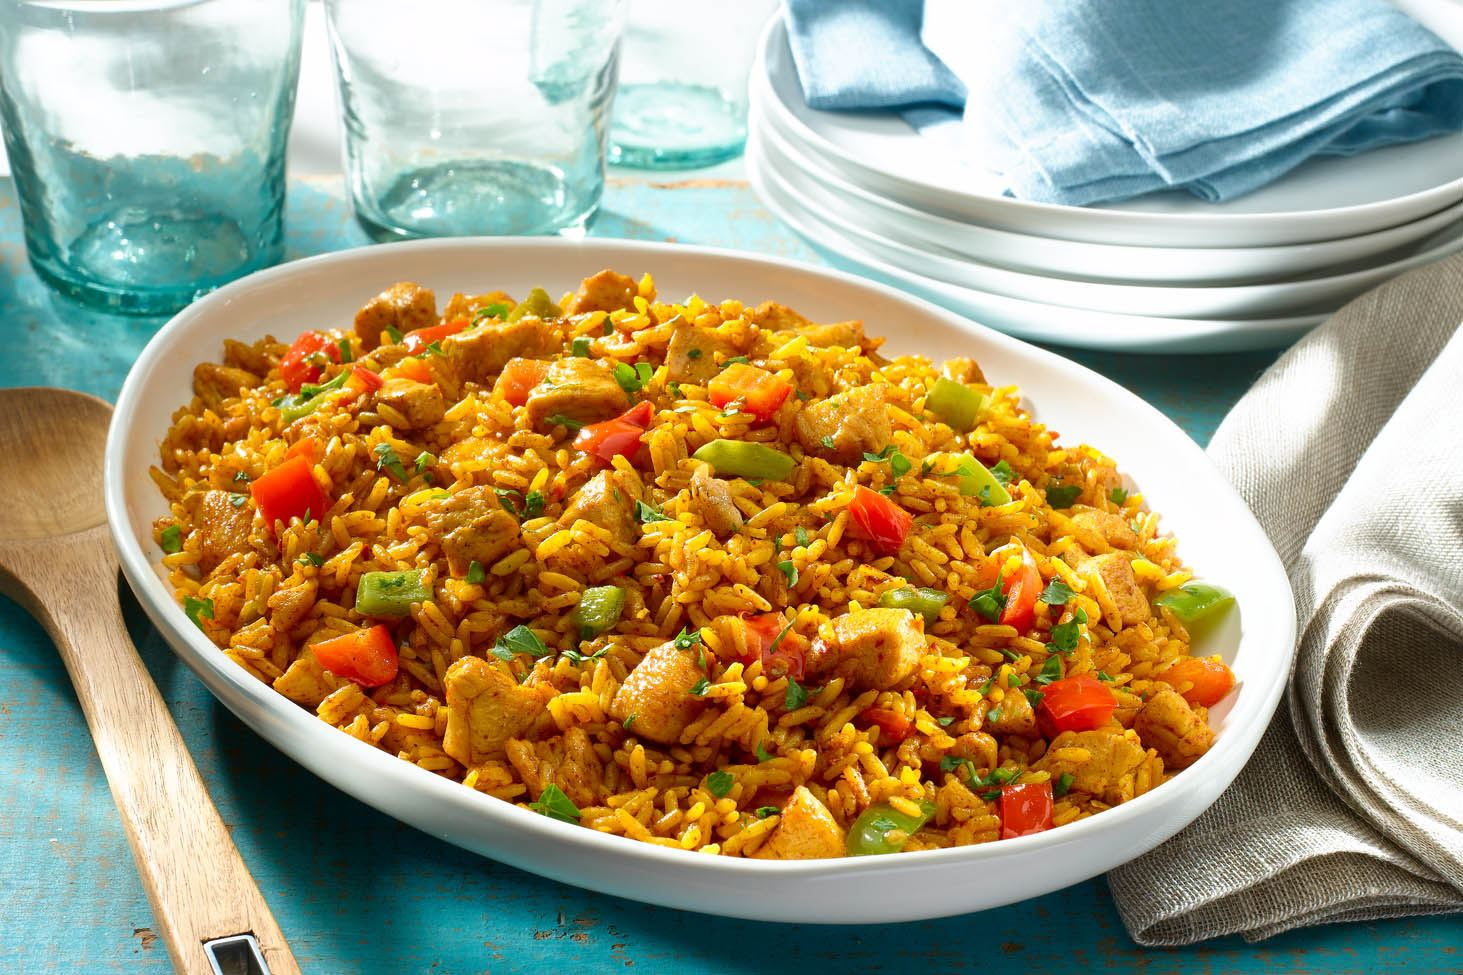 Southwestern Chicken and Rice